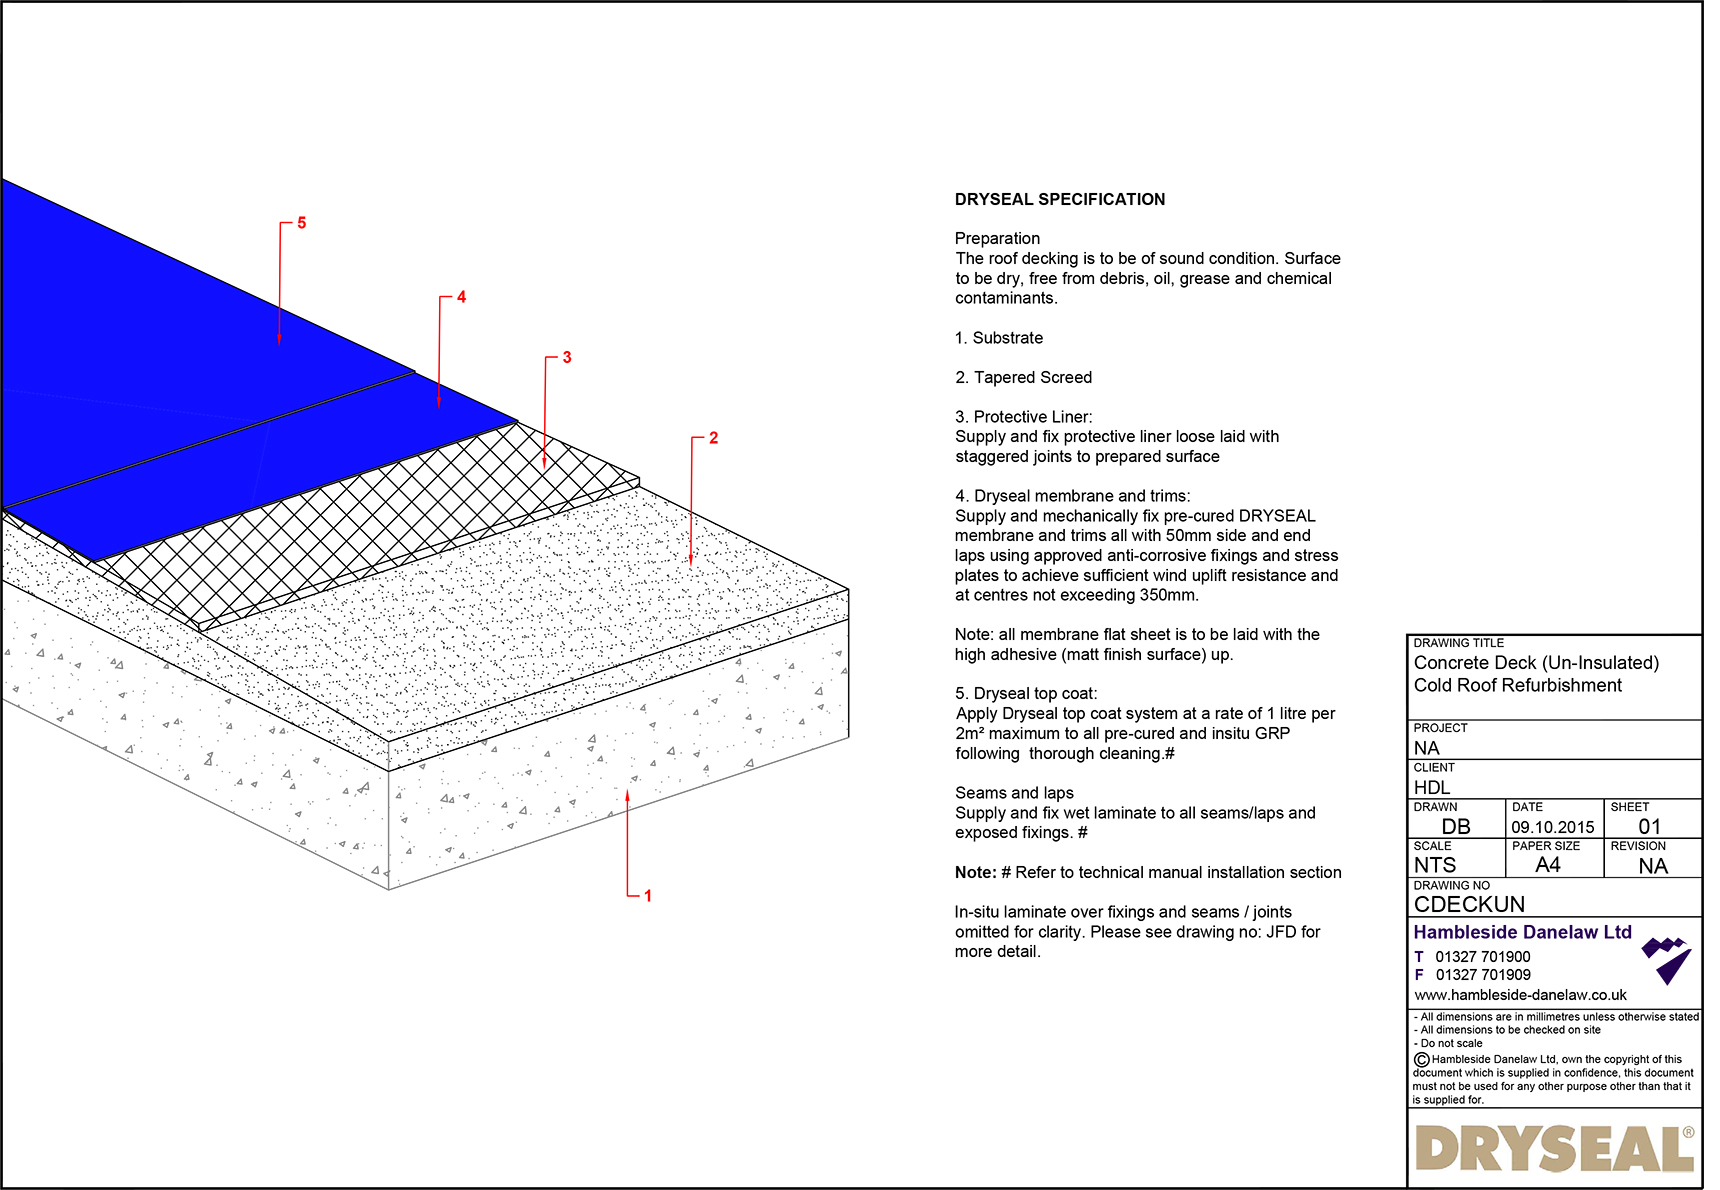 Concrete Deck Cold Roof Dryseal Roofing